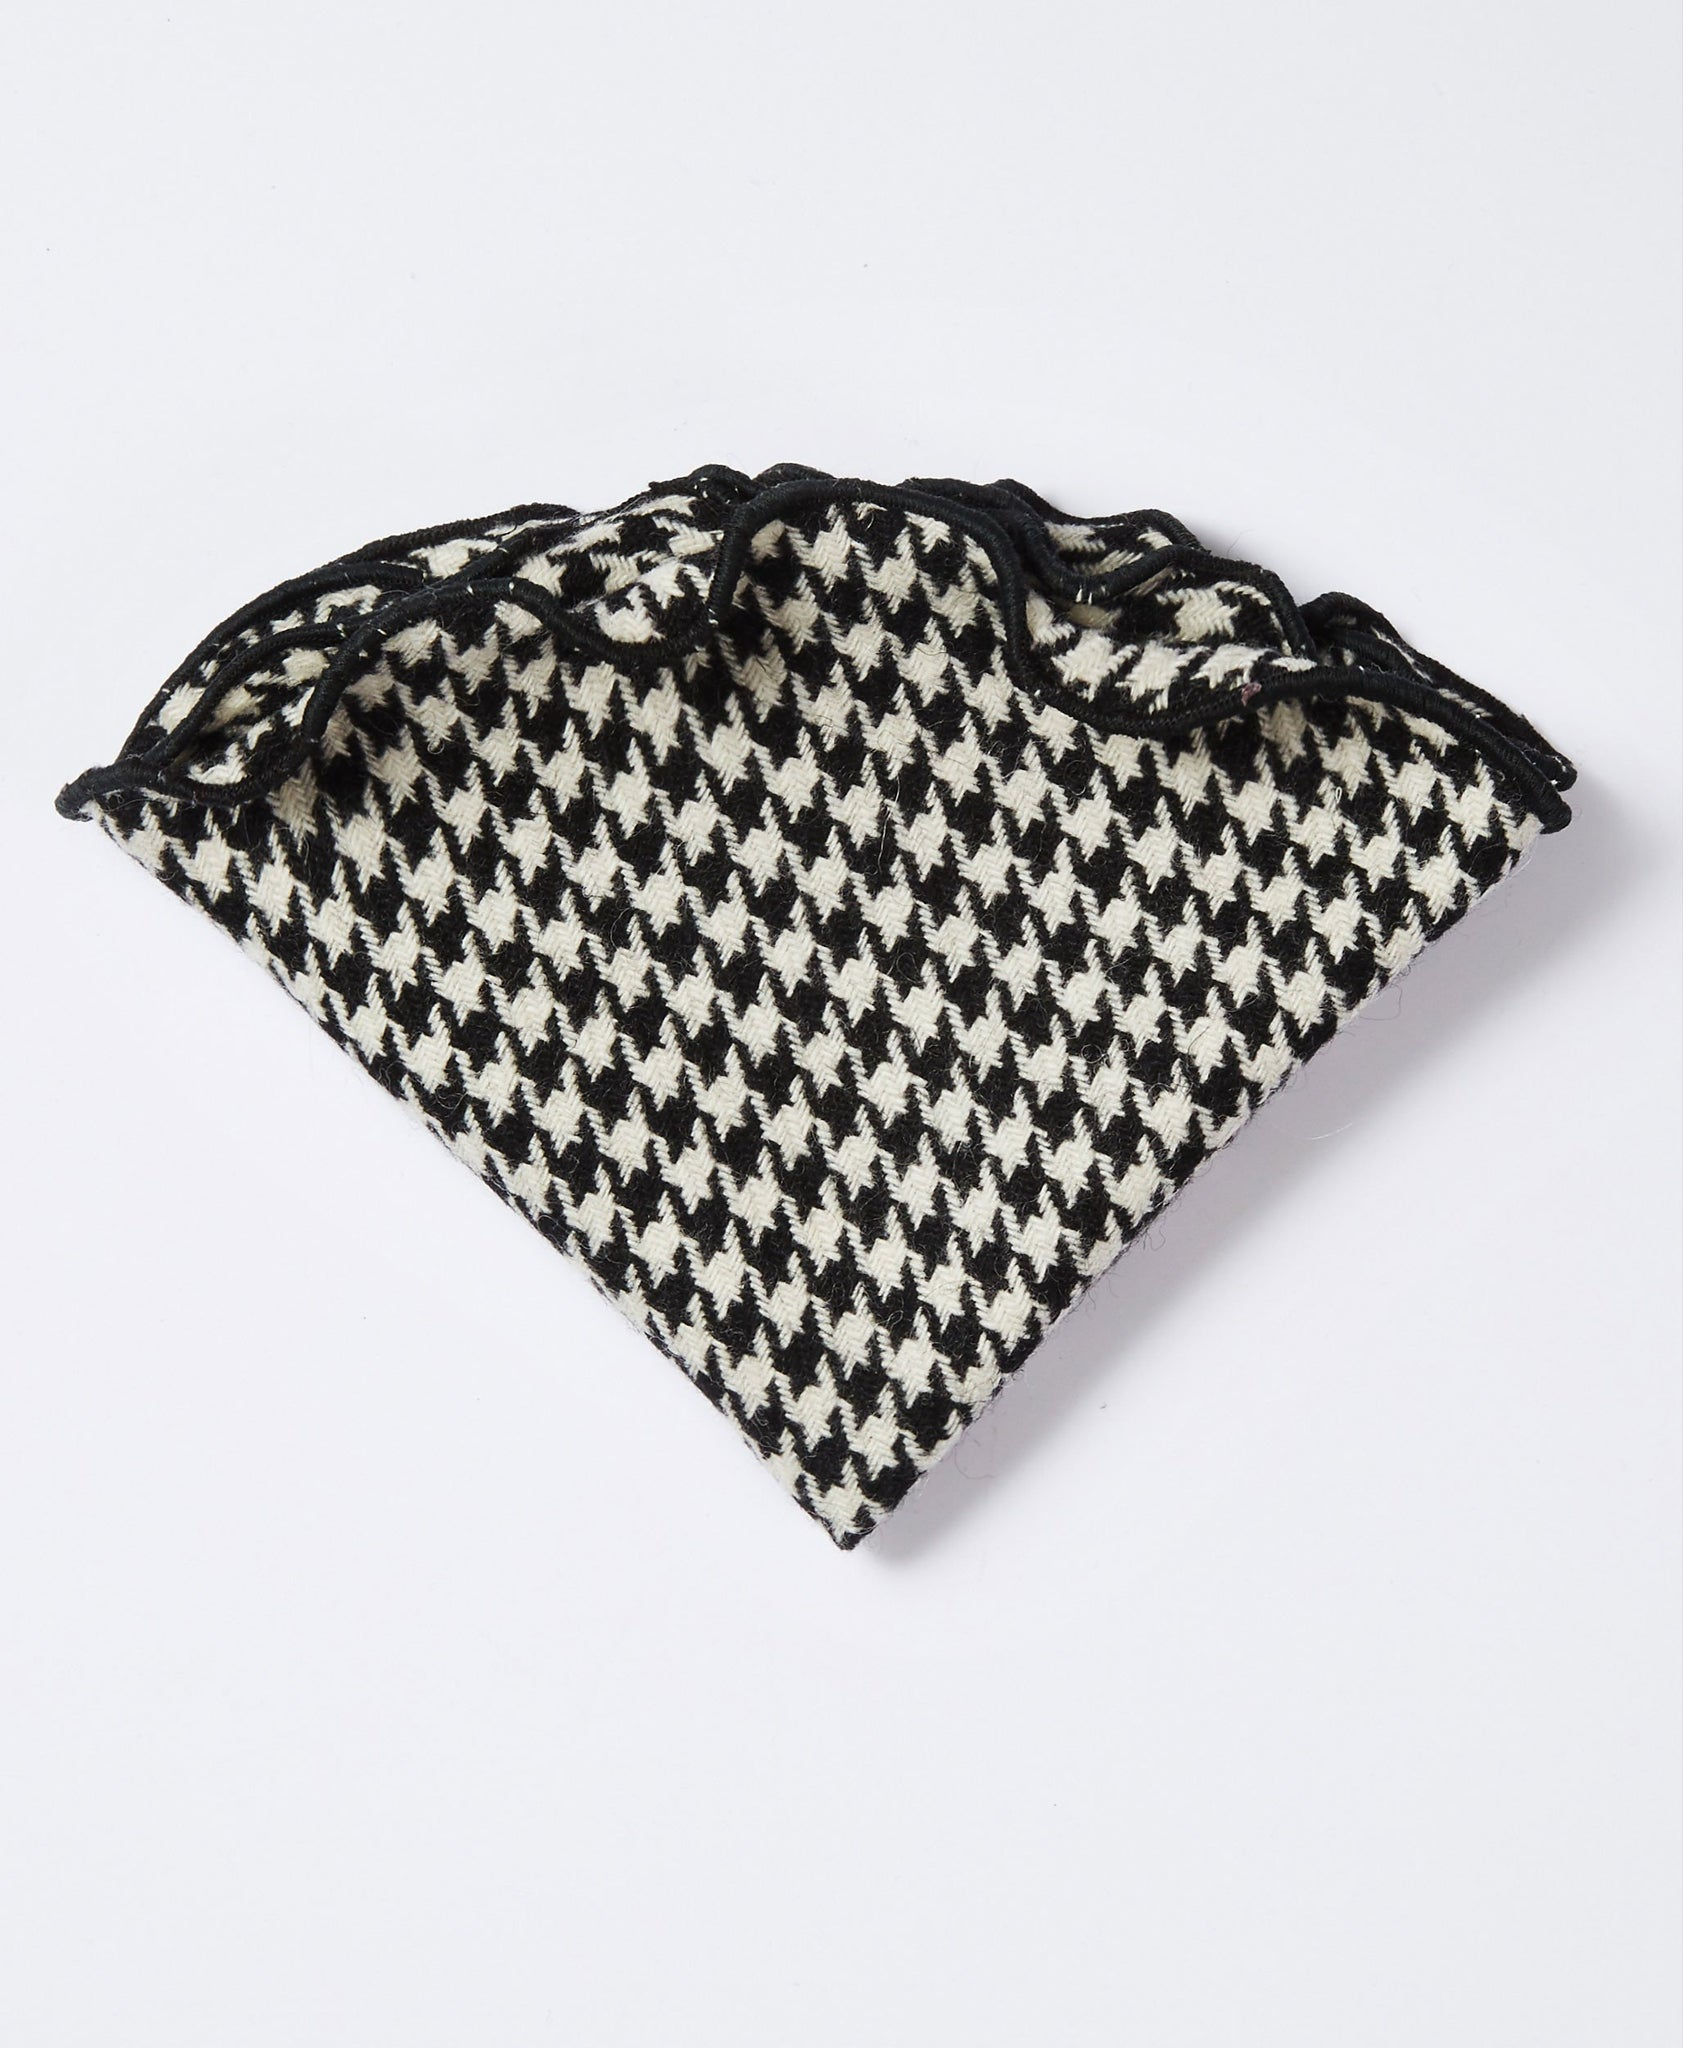 The Houndstooth Pocket Round